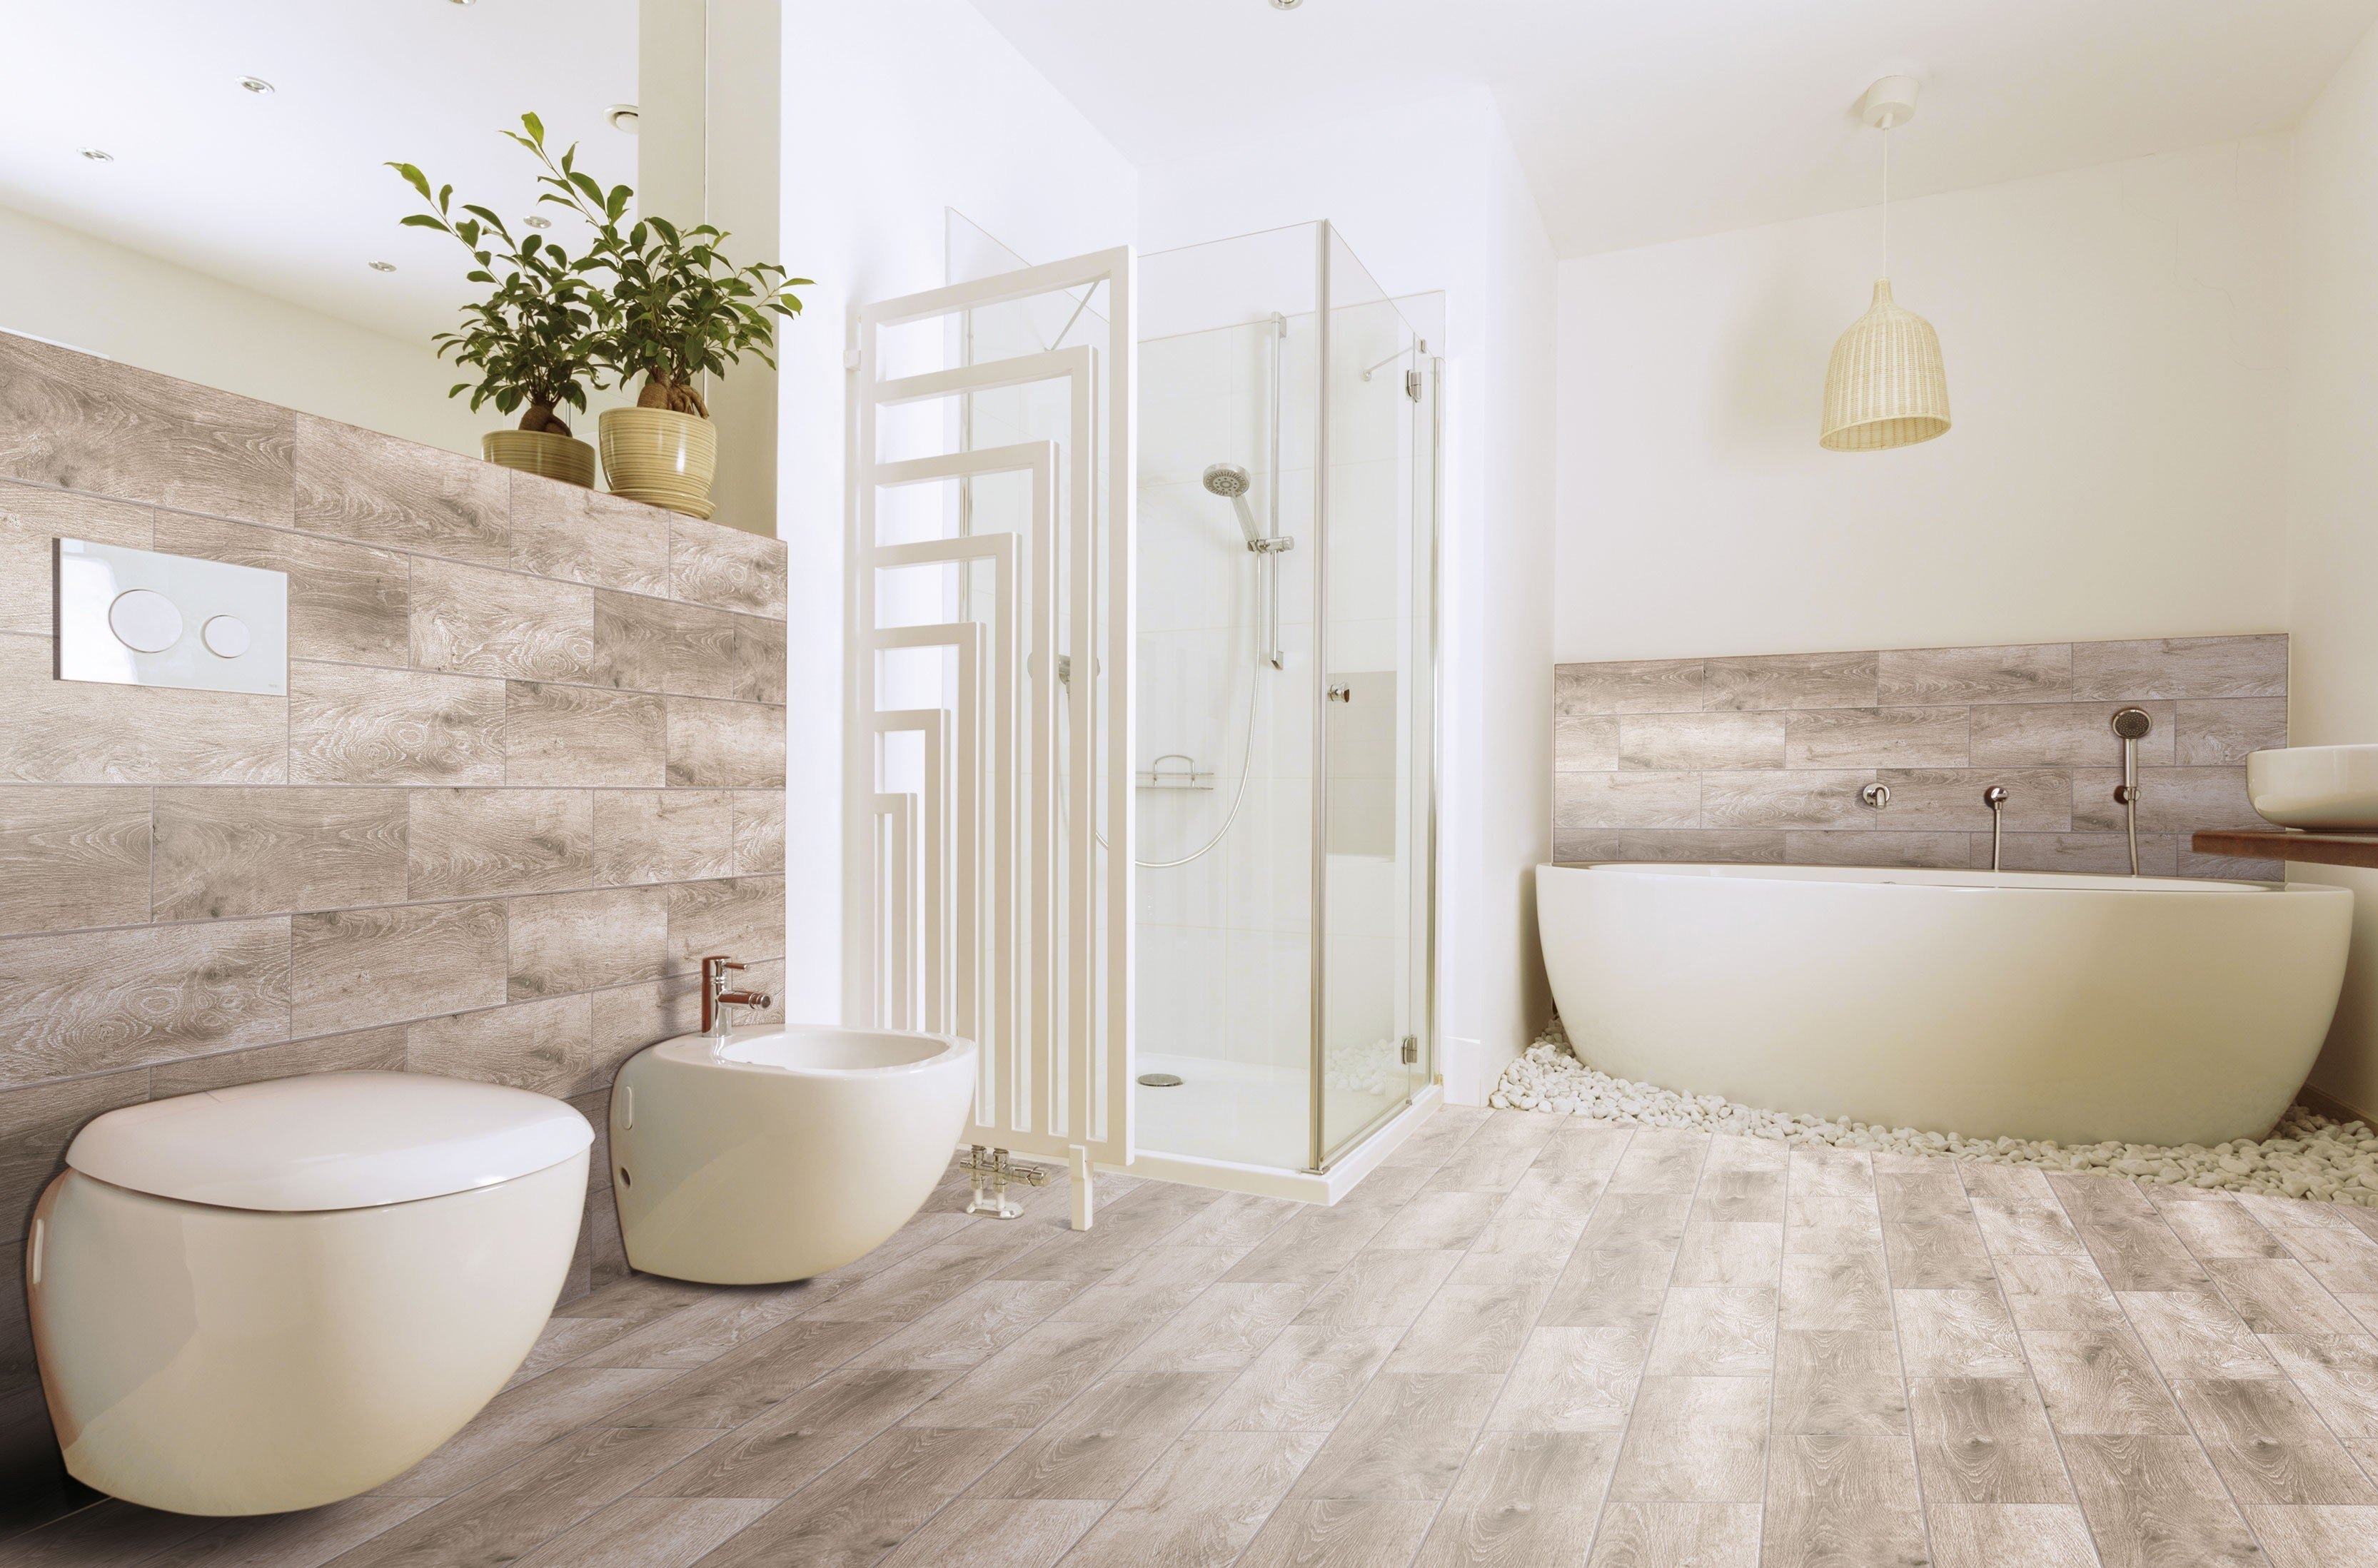 Wood Effect Bathroom Floor Tiles